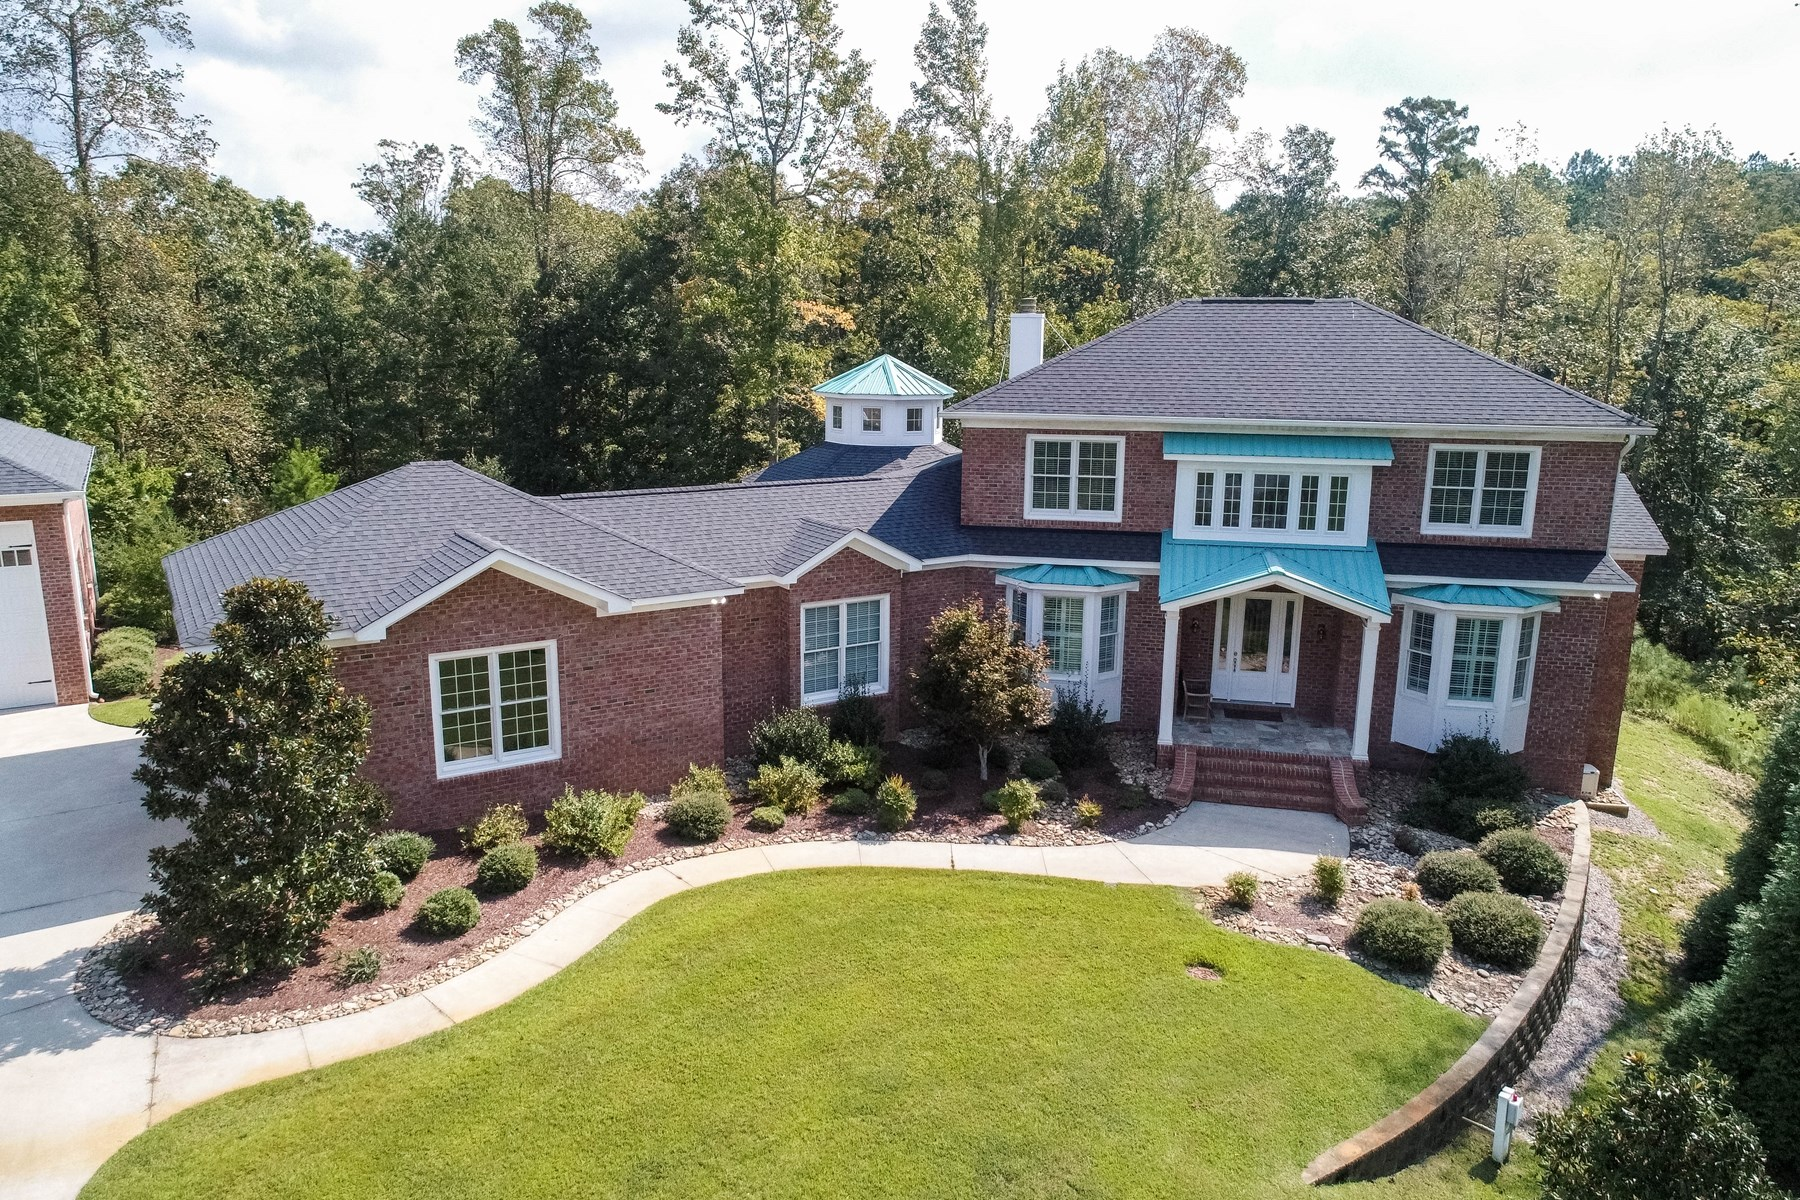 Luxury Golfcourse Home for sale, Eastern NC